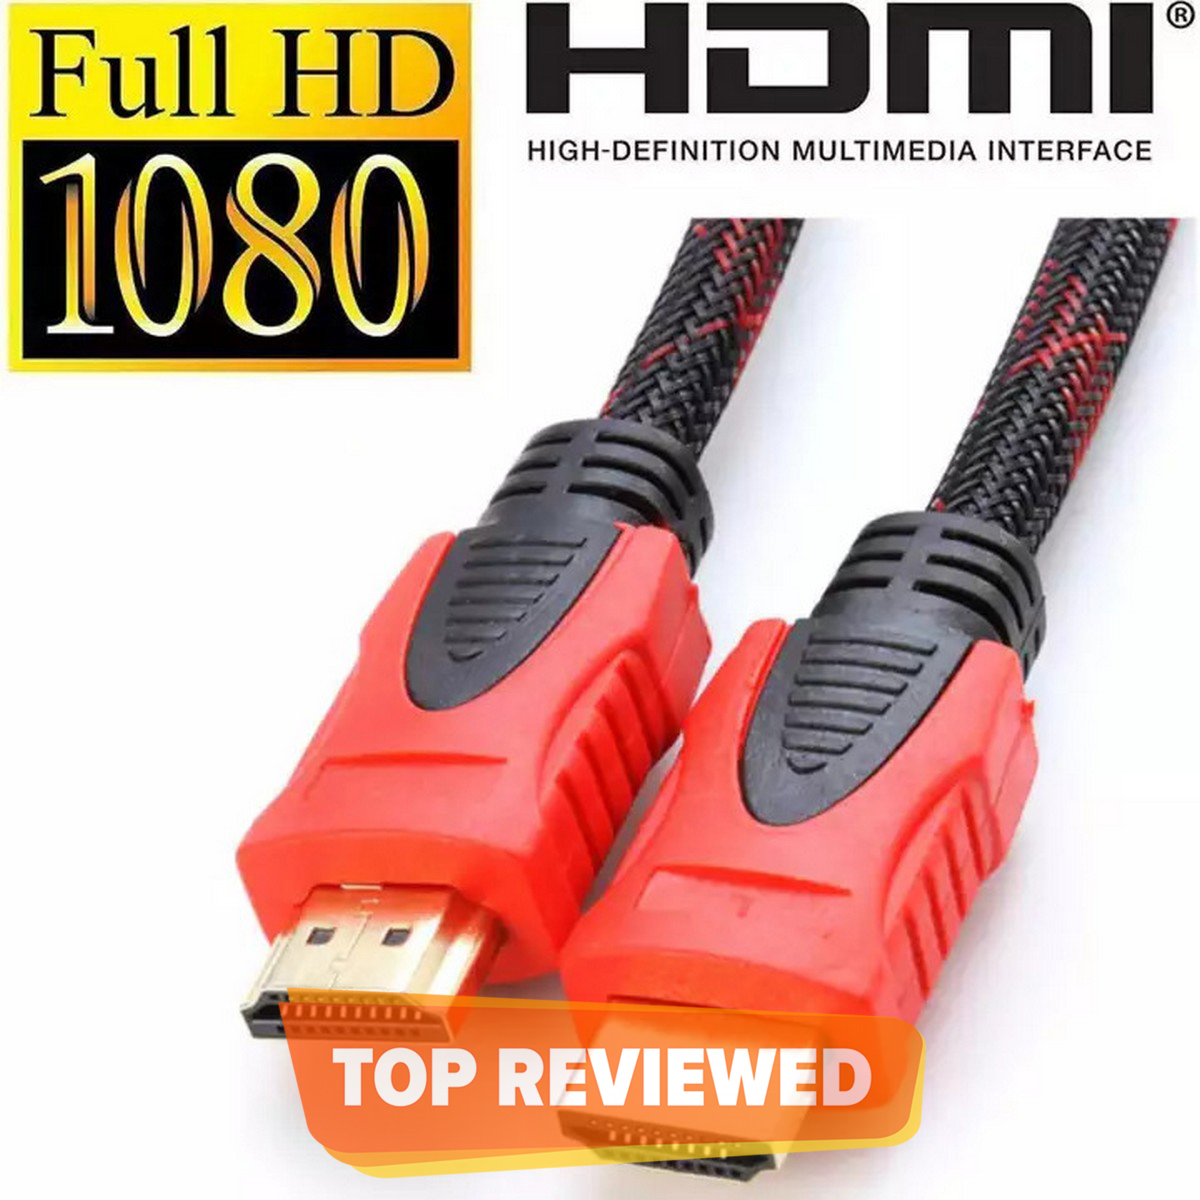 HDMI Cable Round 1.5 Meter And Available in 3 Meter 5 Meter 10 Meter 15 Meter 20 Meter 25 Meter 30 Meter Clear Crystal Display